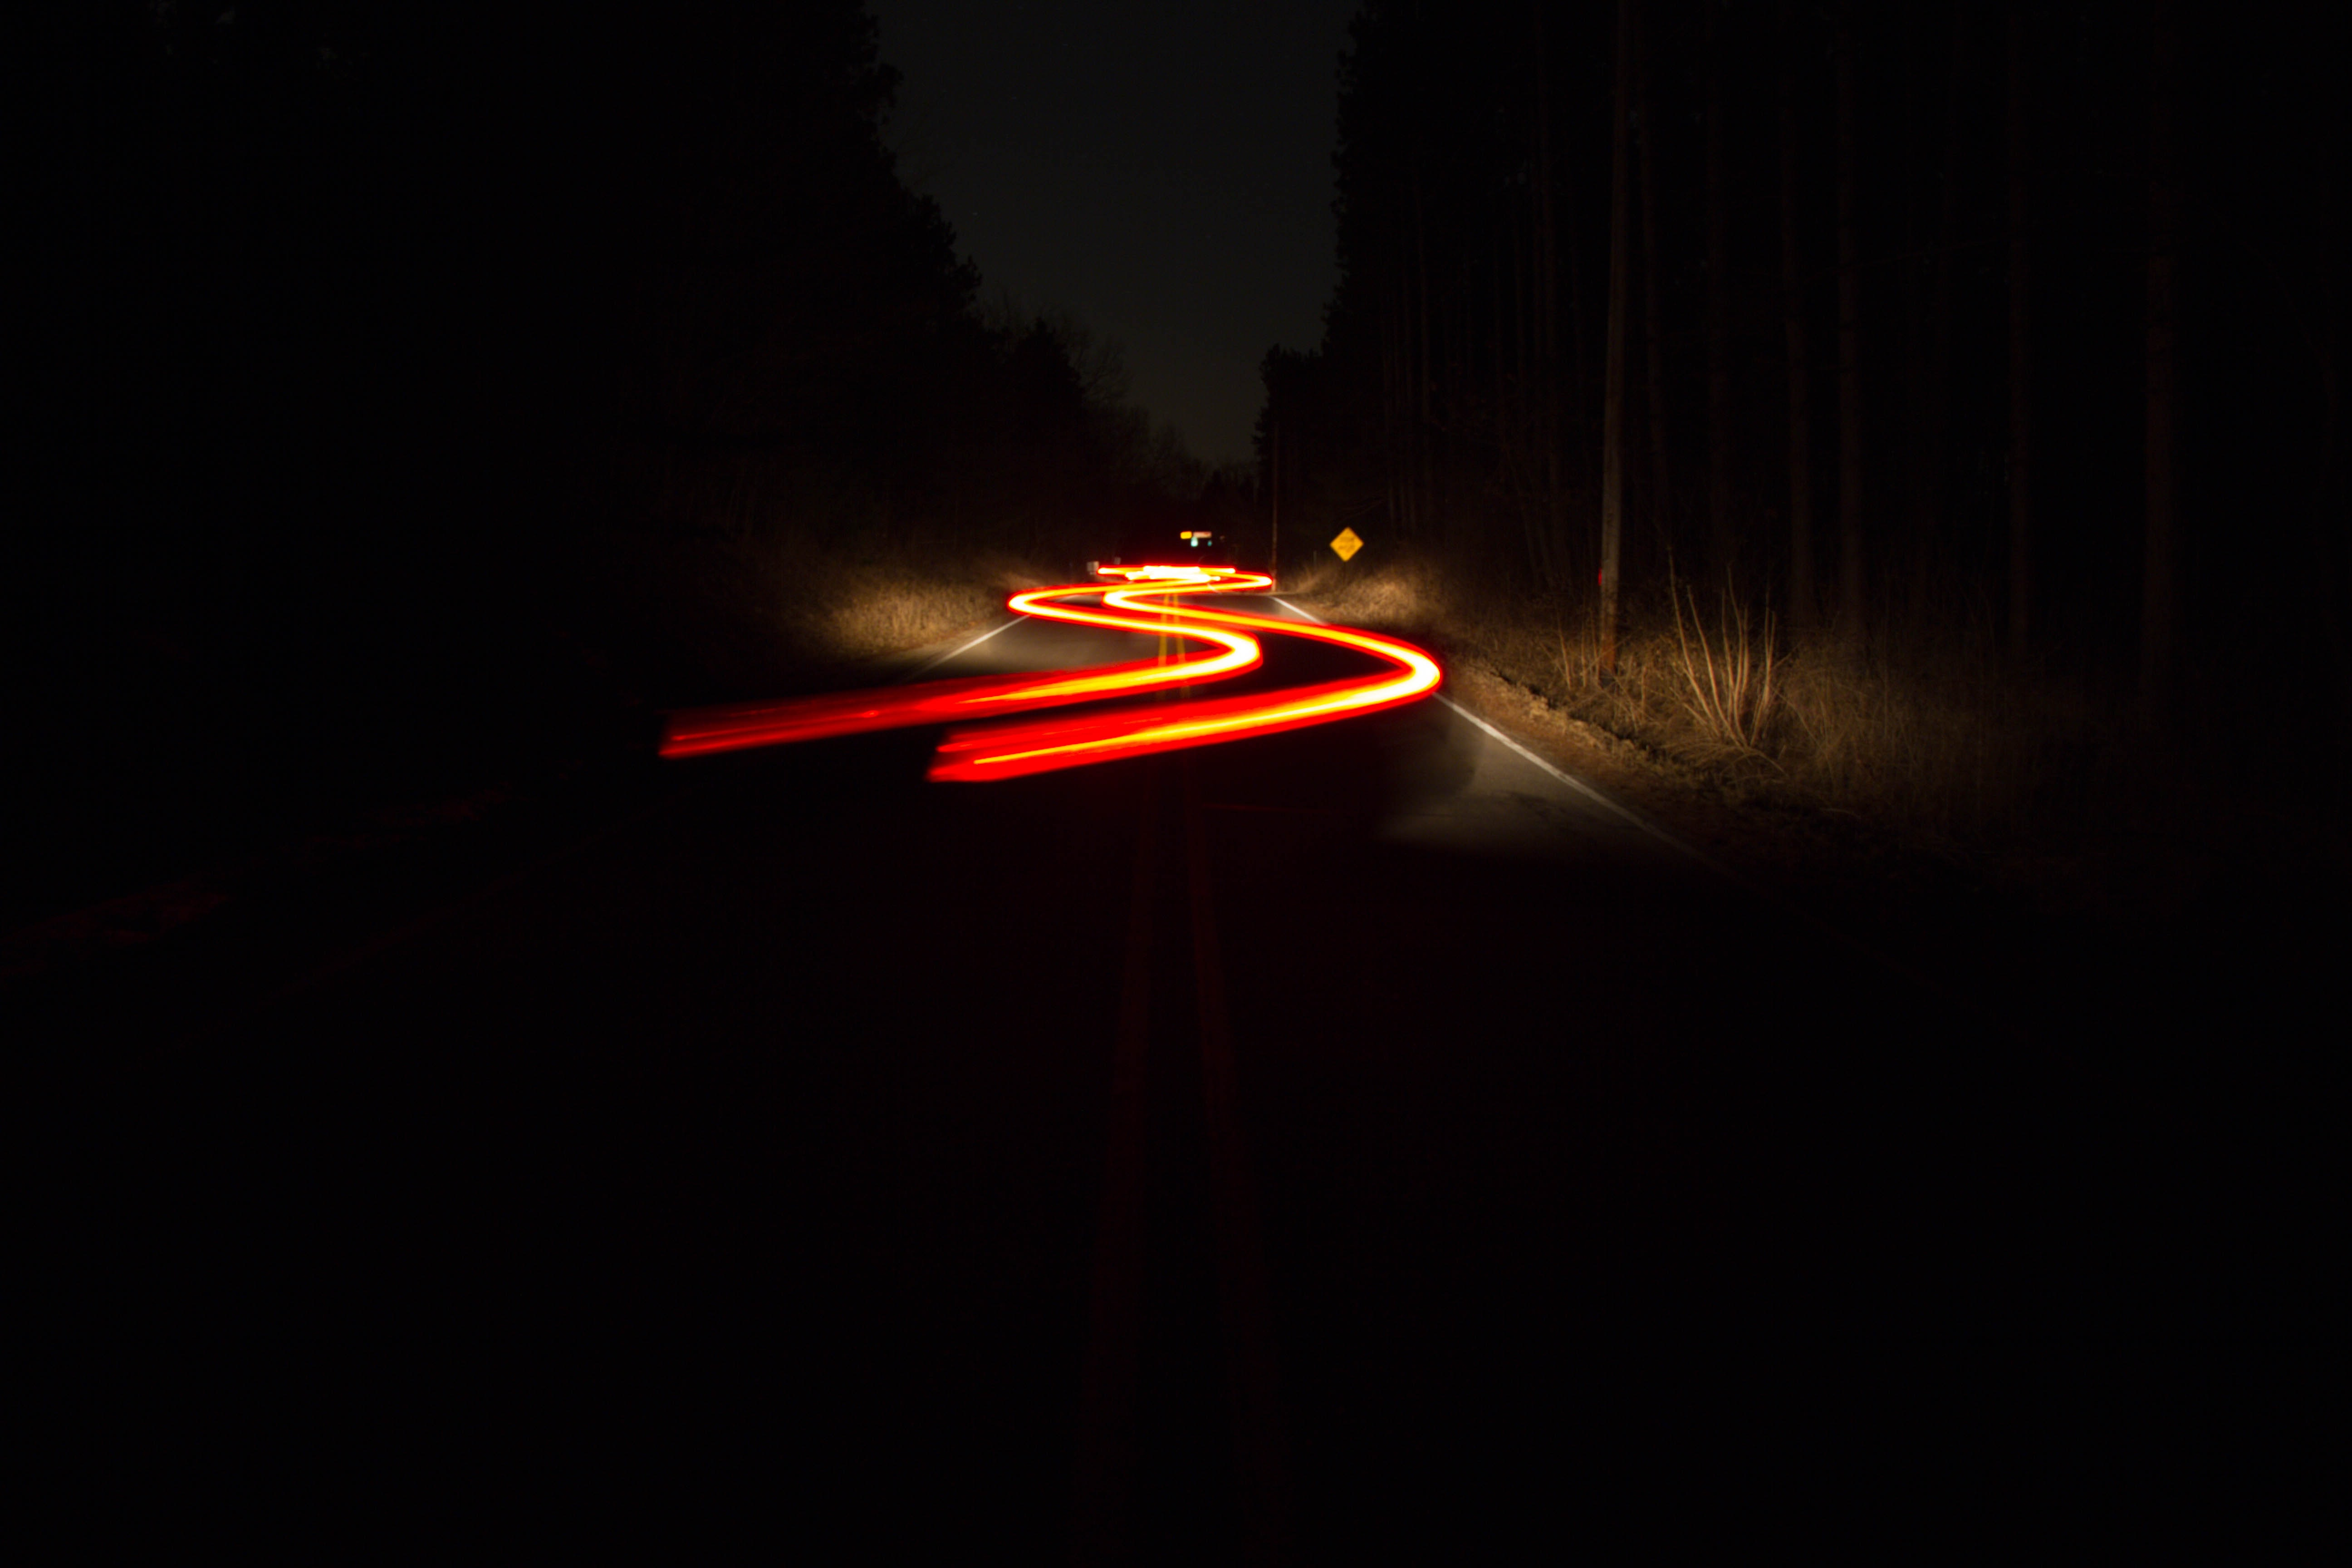 time-lapse photography of vehicle lights